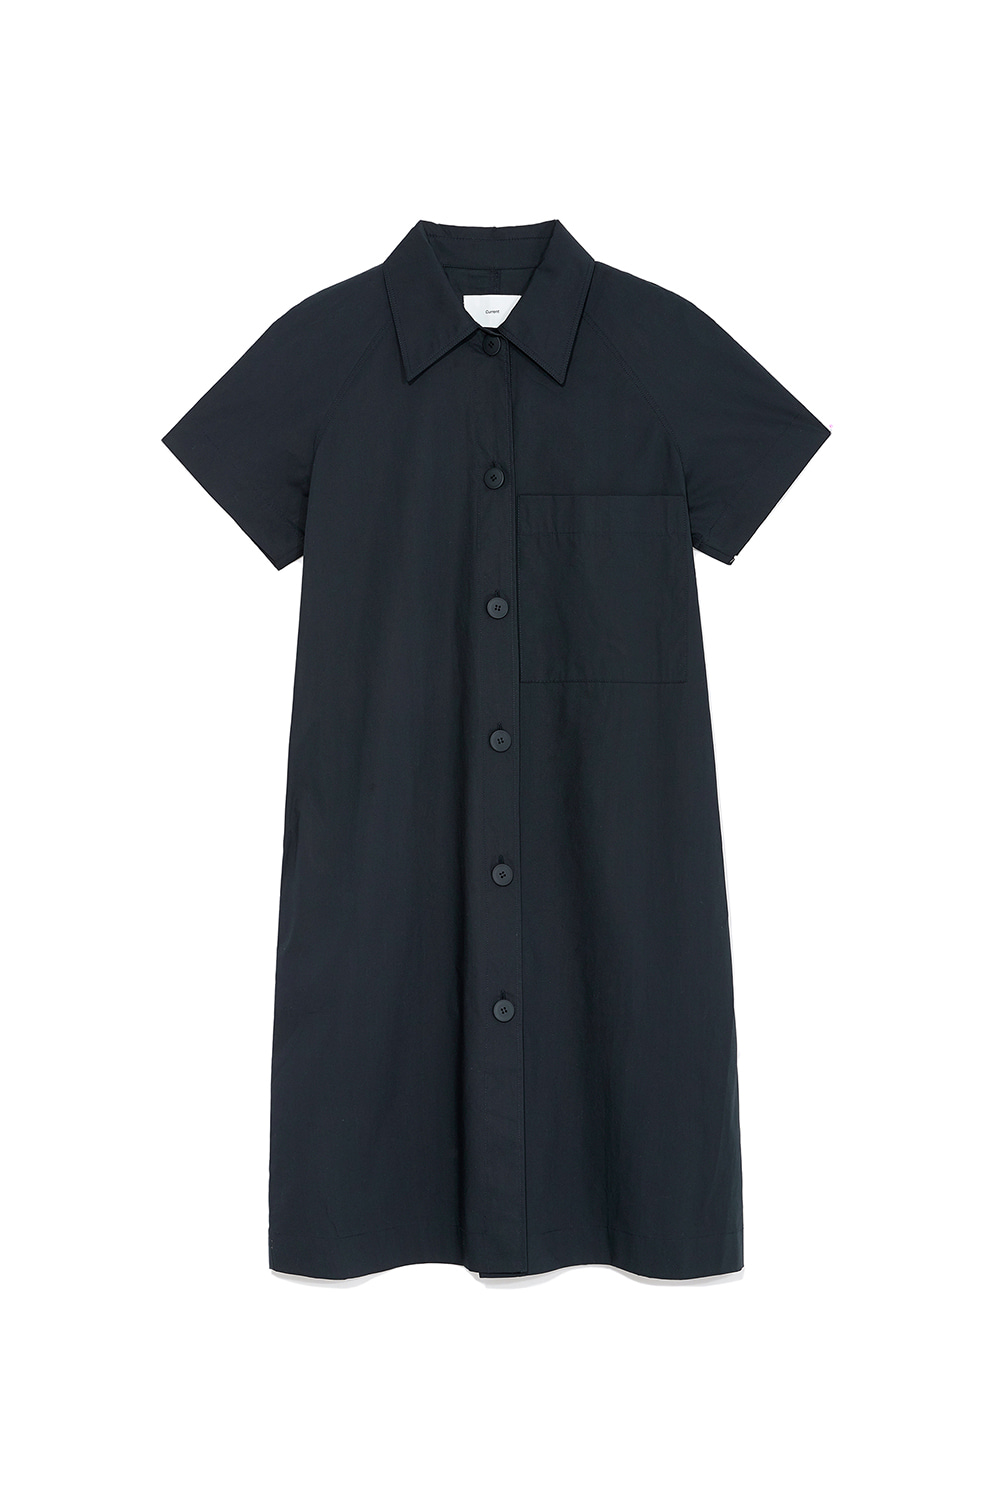 Over Shirts Dress Women [Navy]